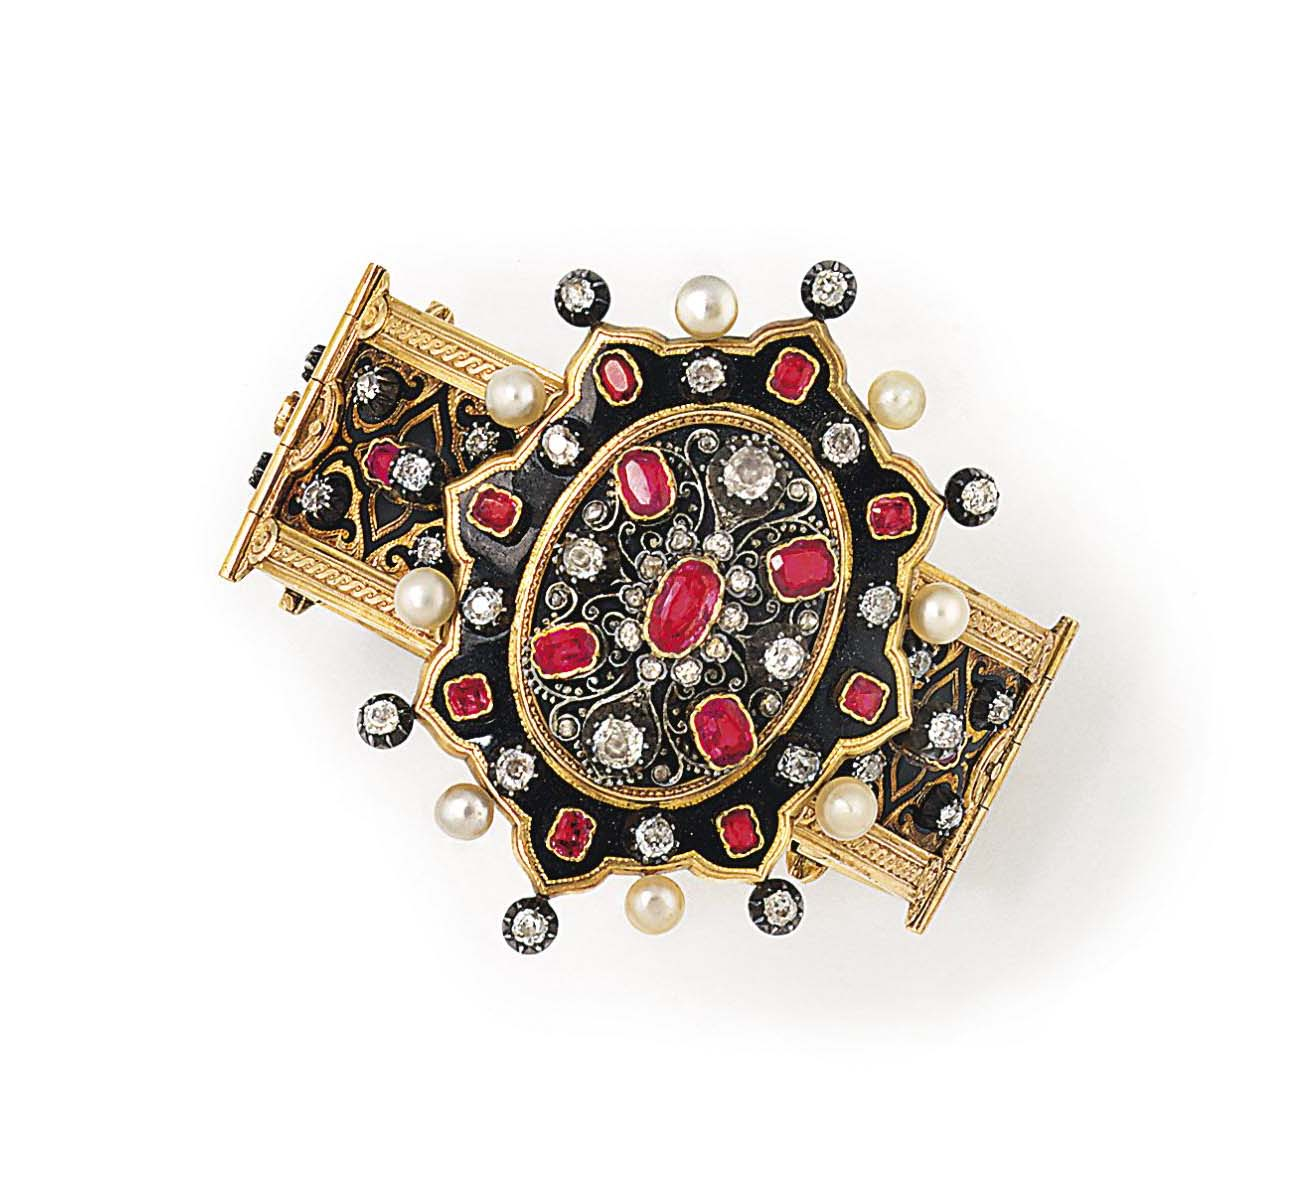 A FRENCH LATE 19TH CENTURY GEM-SET AND ENAMEL BRACELET AND B...